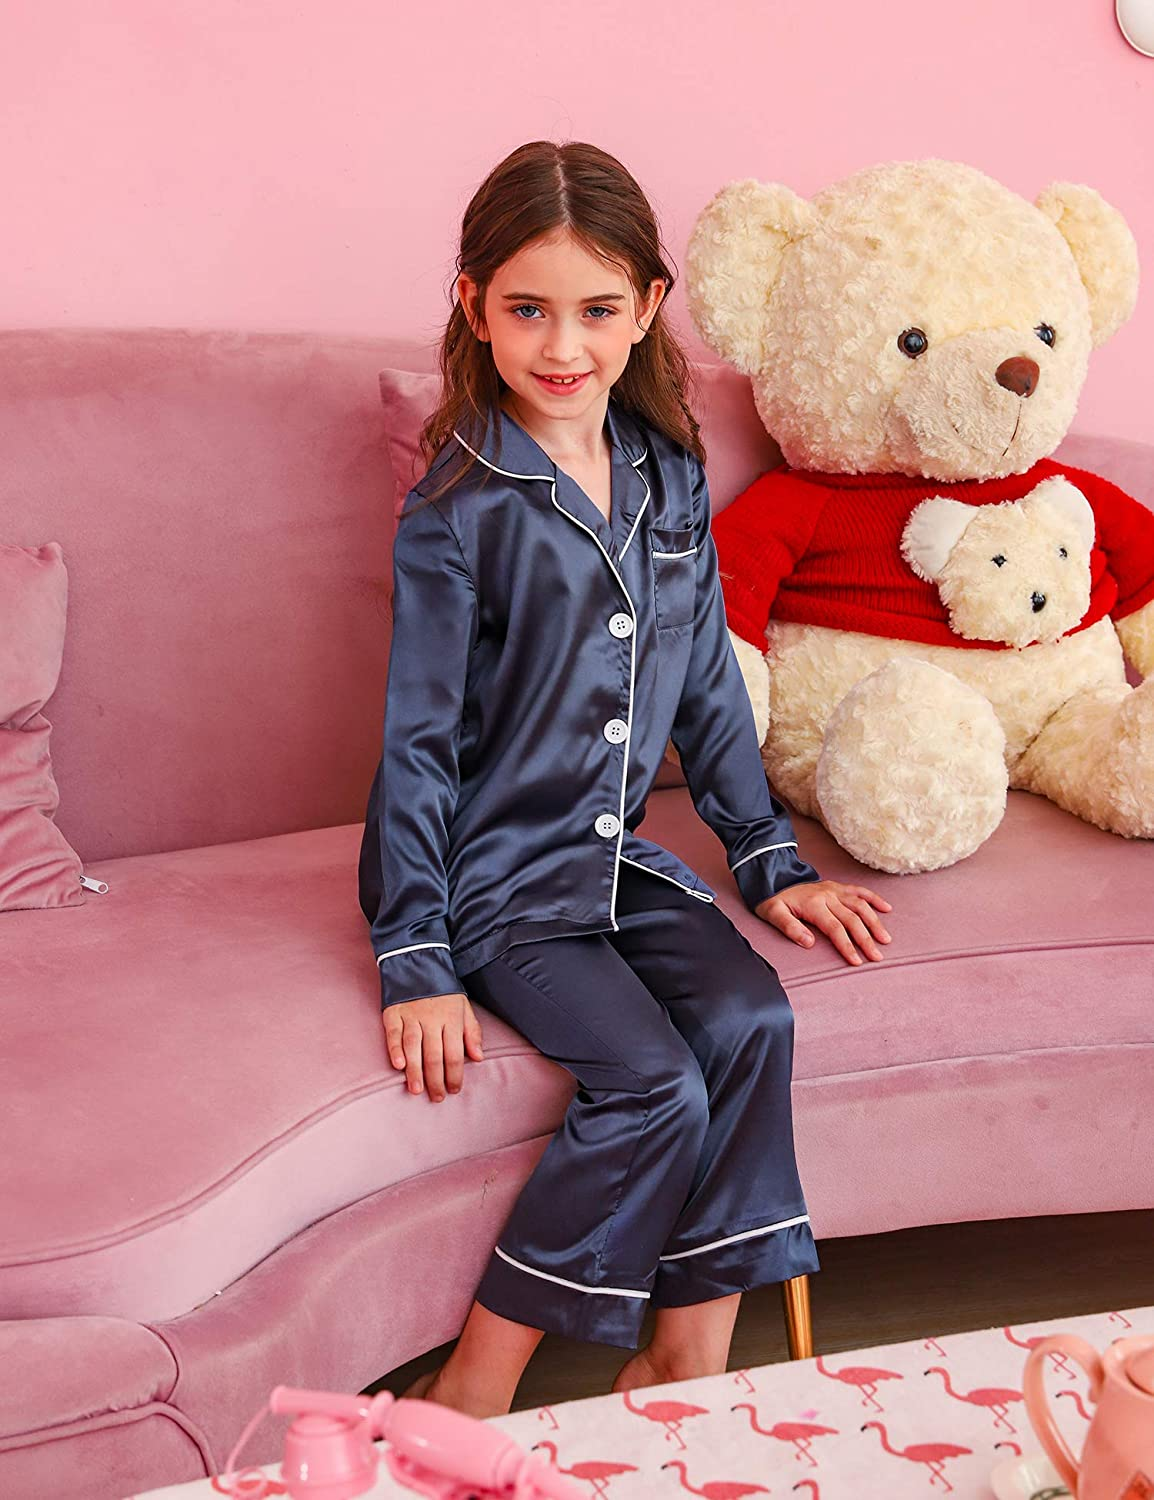 Hawiton Girls Satin Silk Pjs Pyjamas Set Long Sleeve Kids Sleepwear Nightwear Outfit